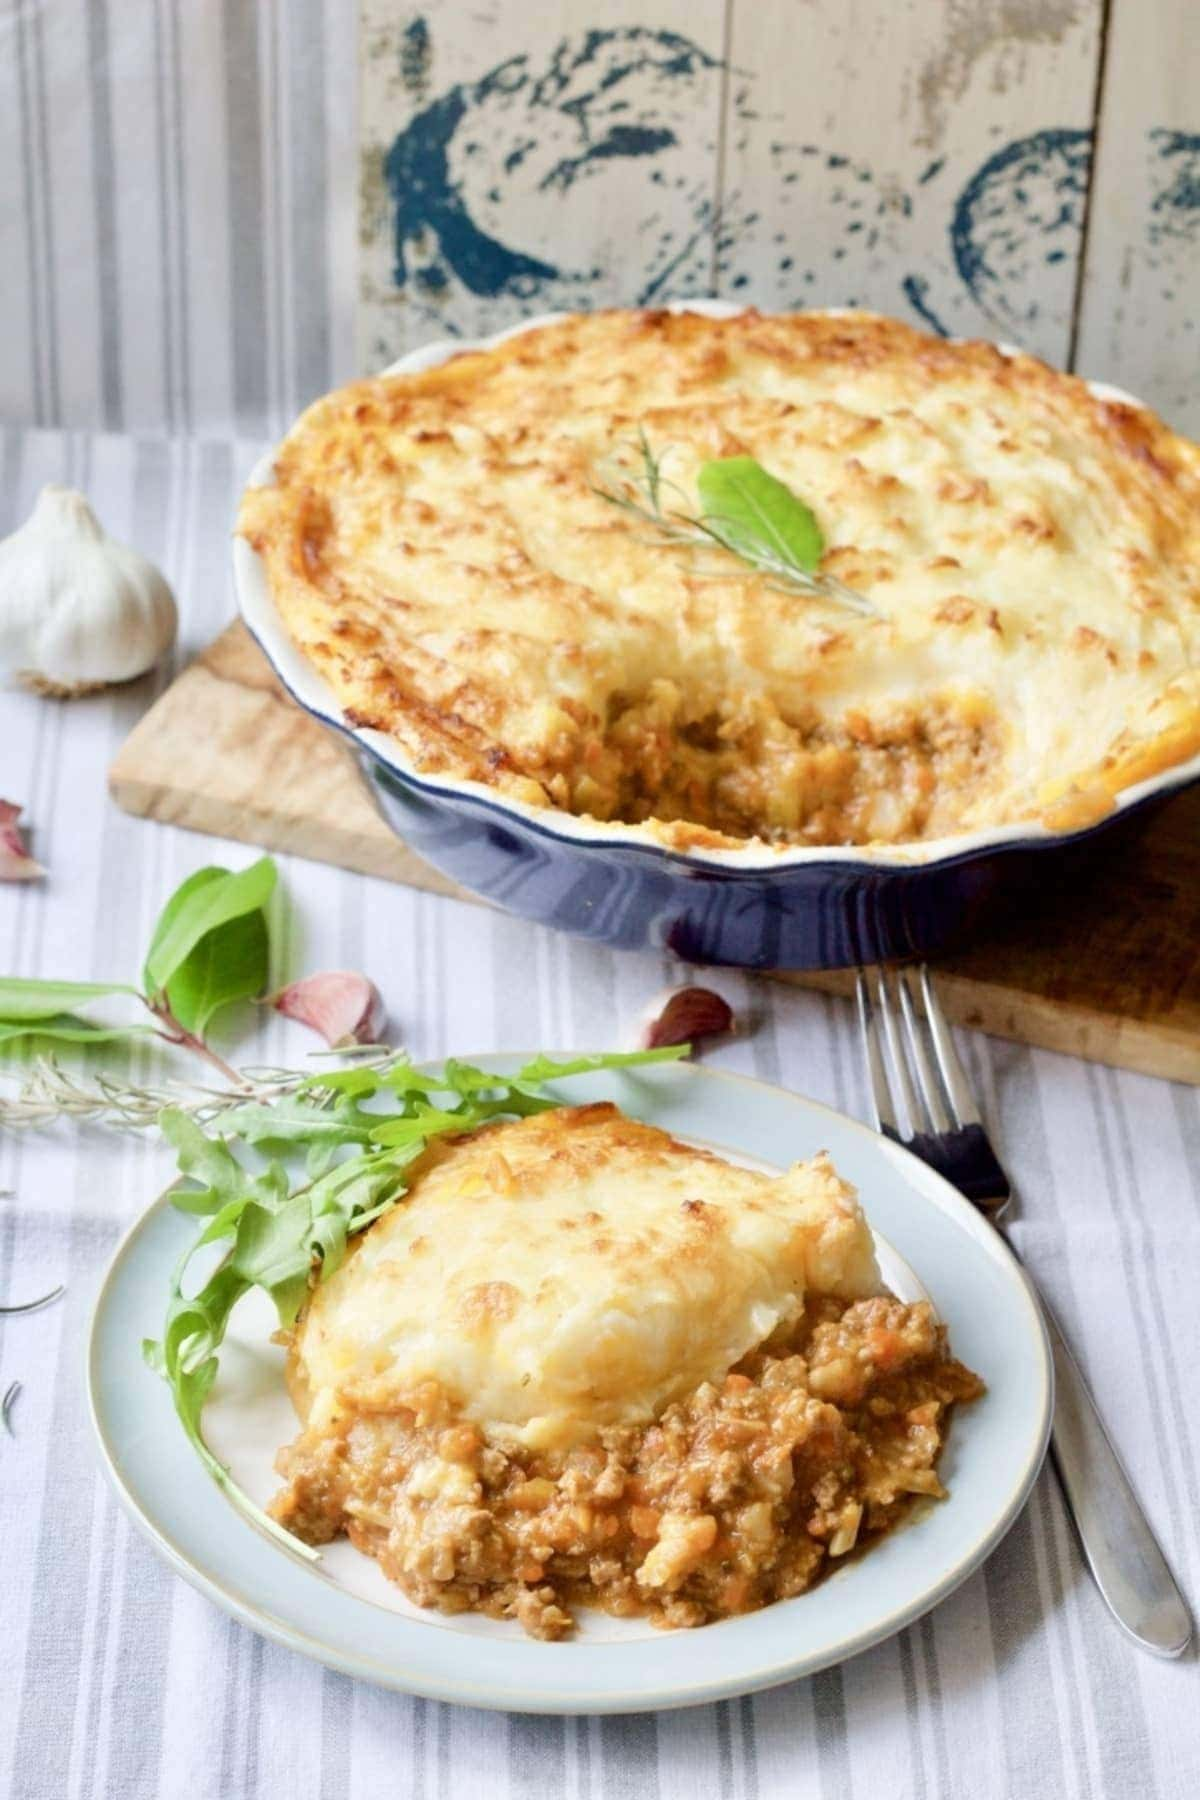 Shepherd's pie in a dish and portion on a plate.